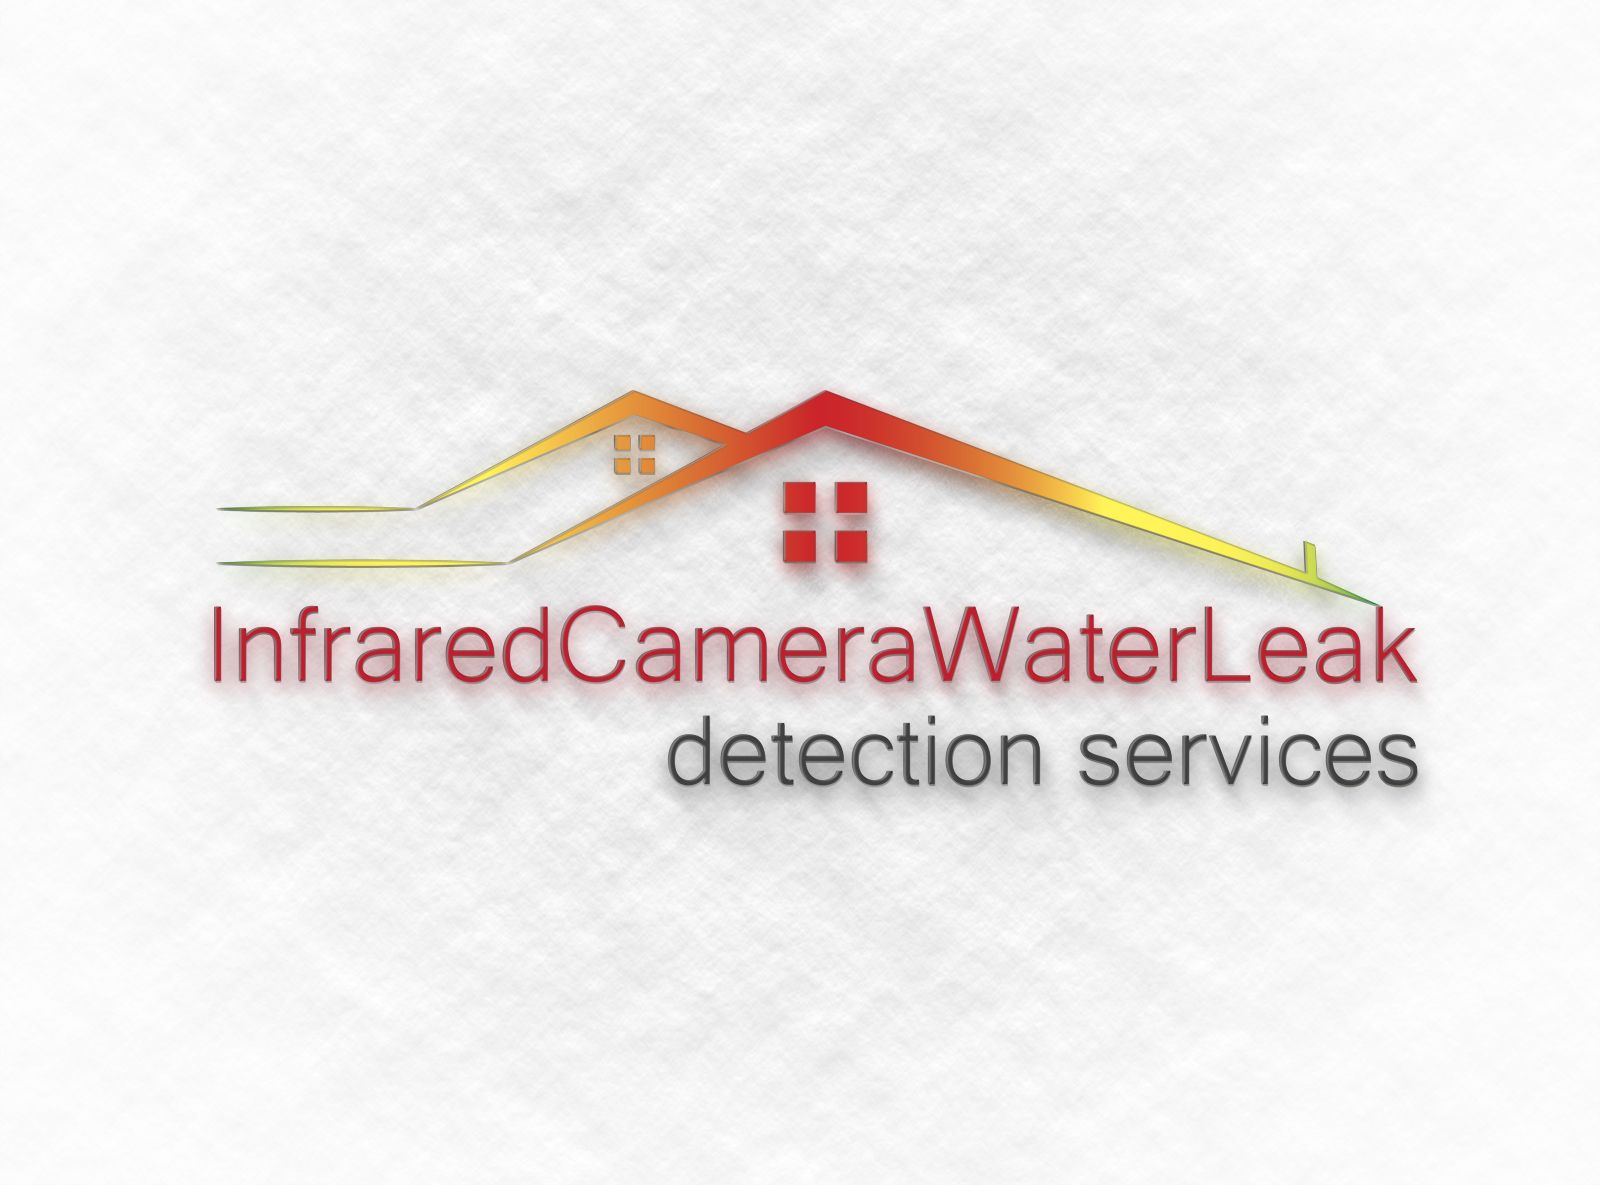 4747_InfraredCameraWaterLeakDetectionServices_mock